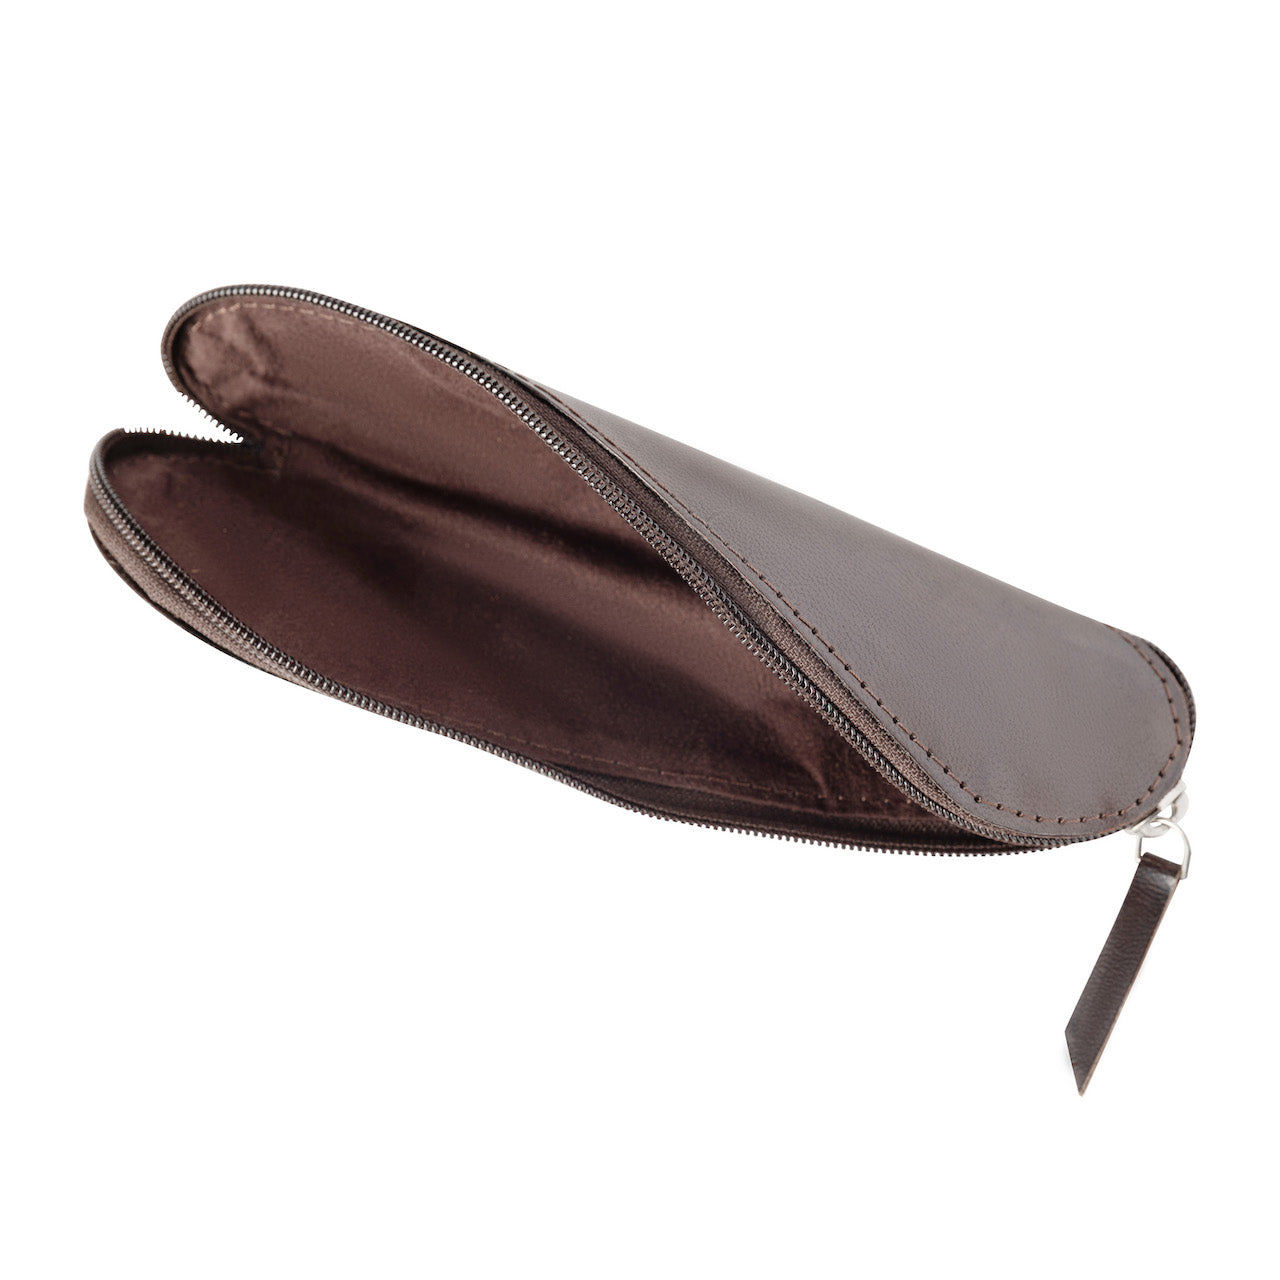 Handmade Leather Twist Pencil Case, 8.5 Inches x 5 Inches